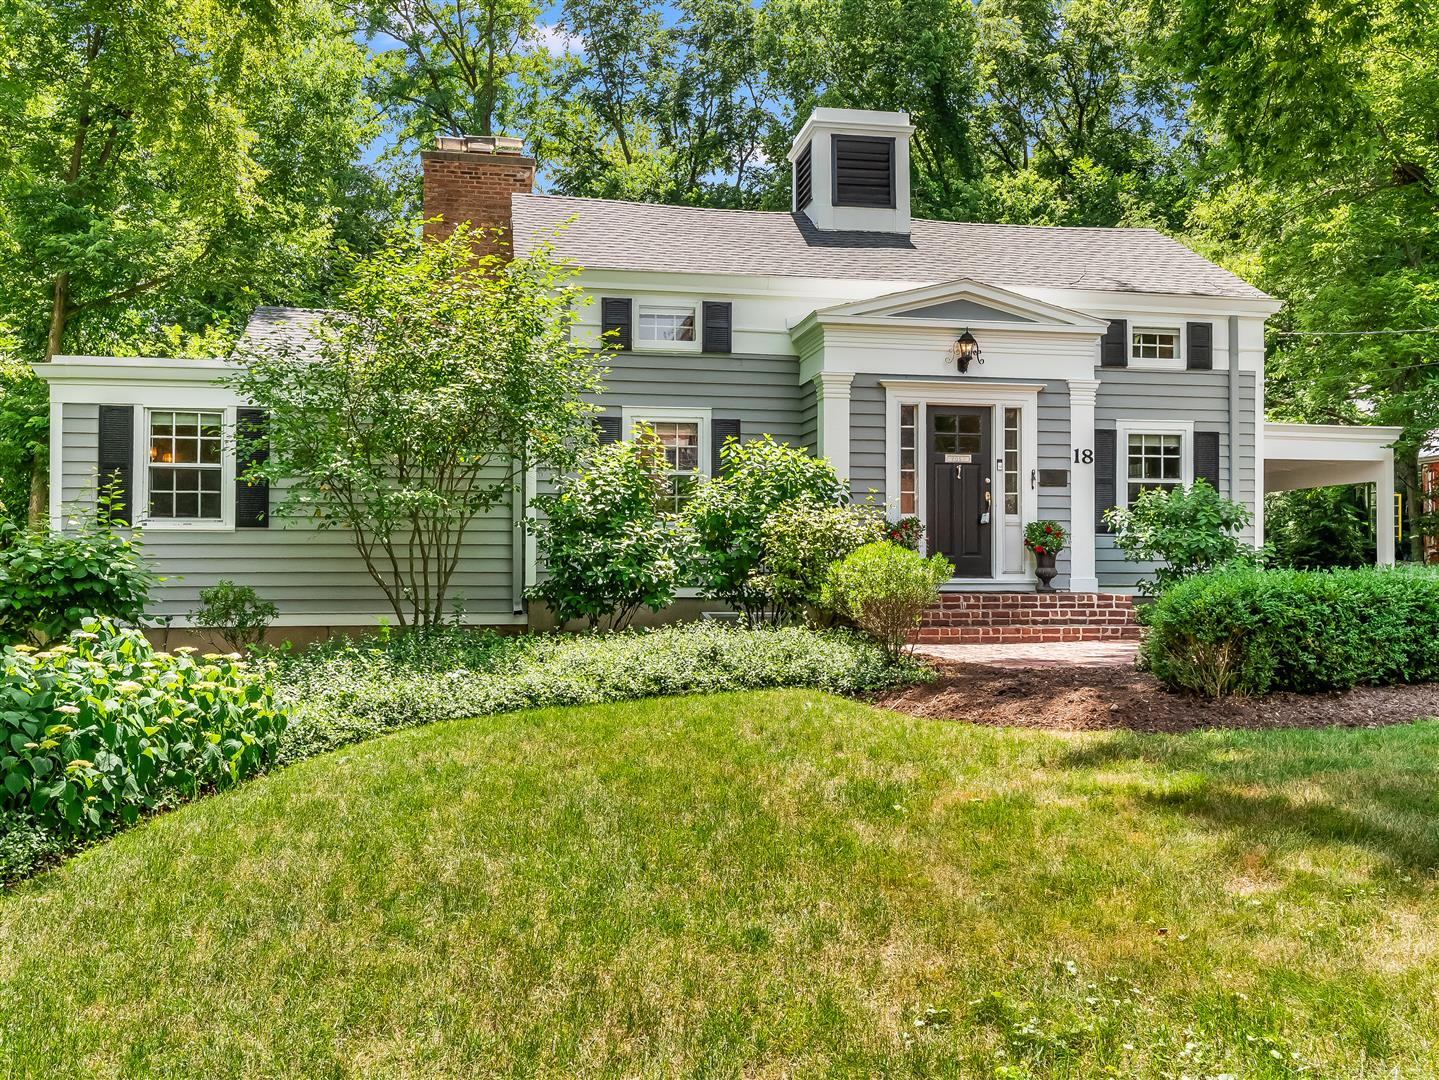 A renovated 1843 Greek Revival Home with new entry addition featuring gray siding with white trim, a portico entry with black door and red brick steps.